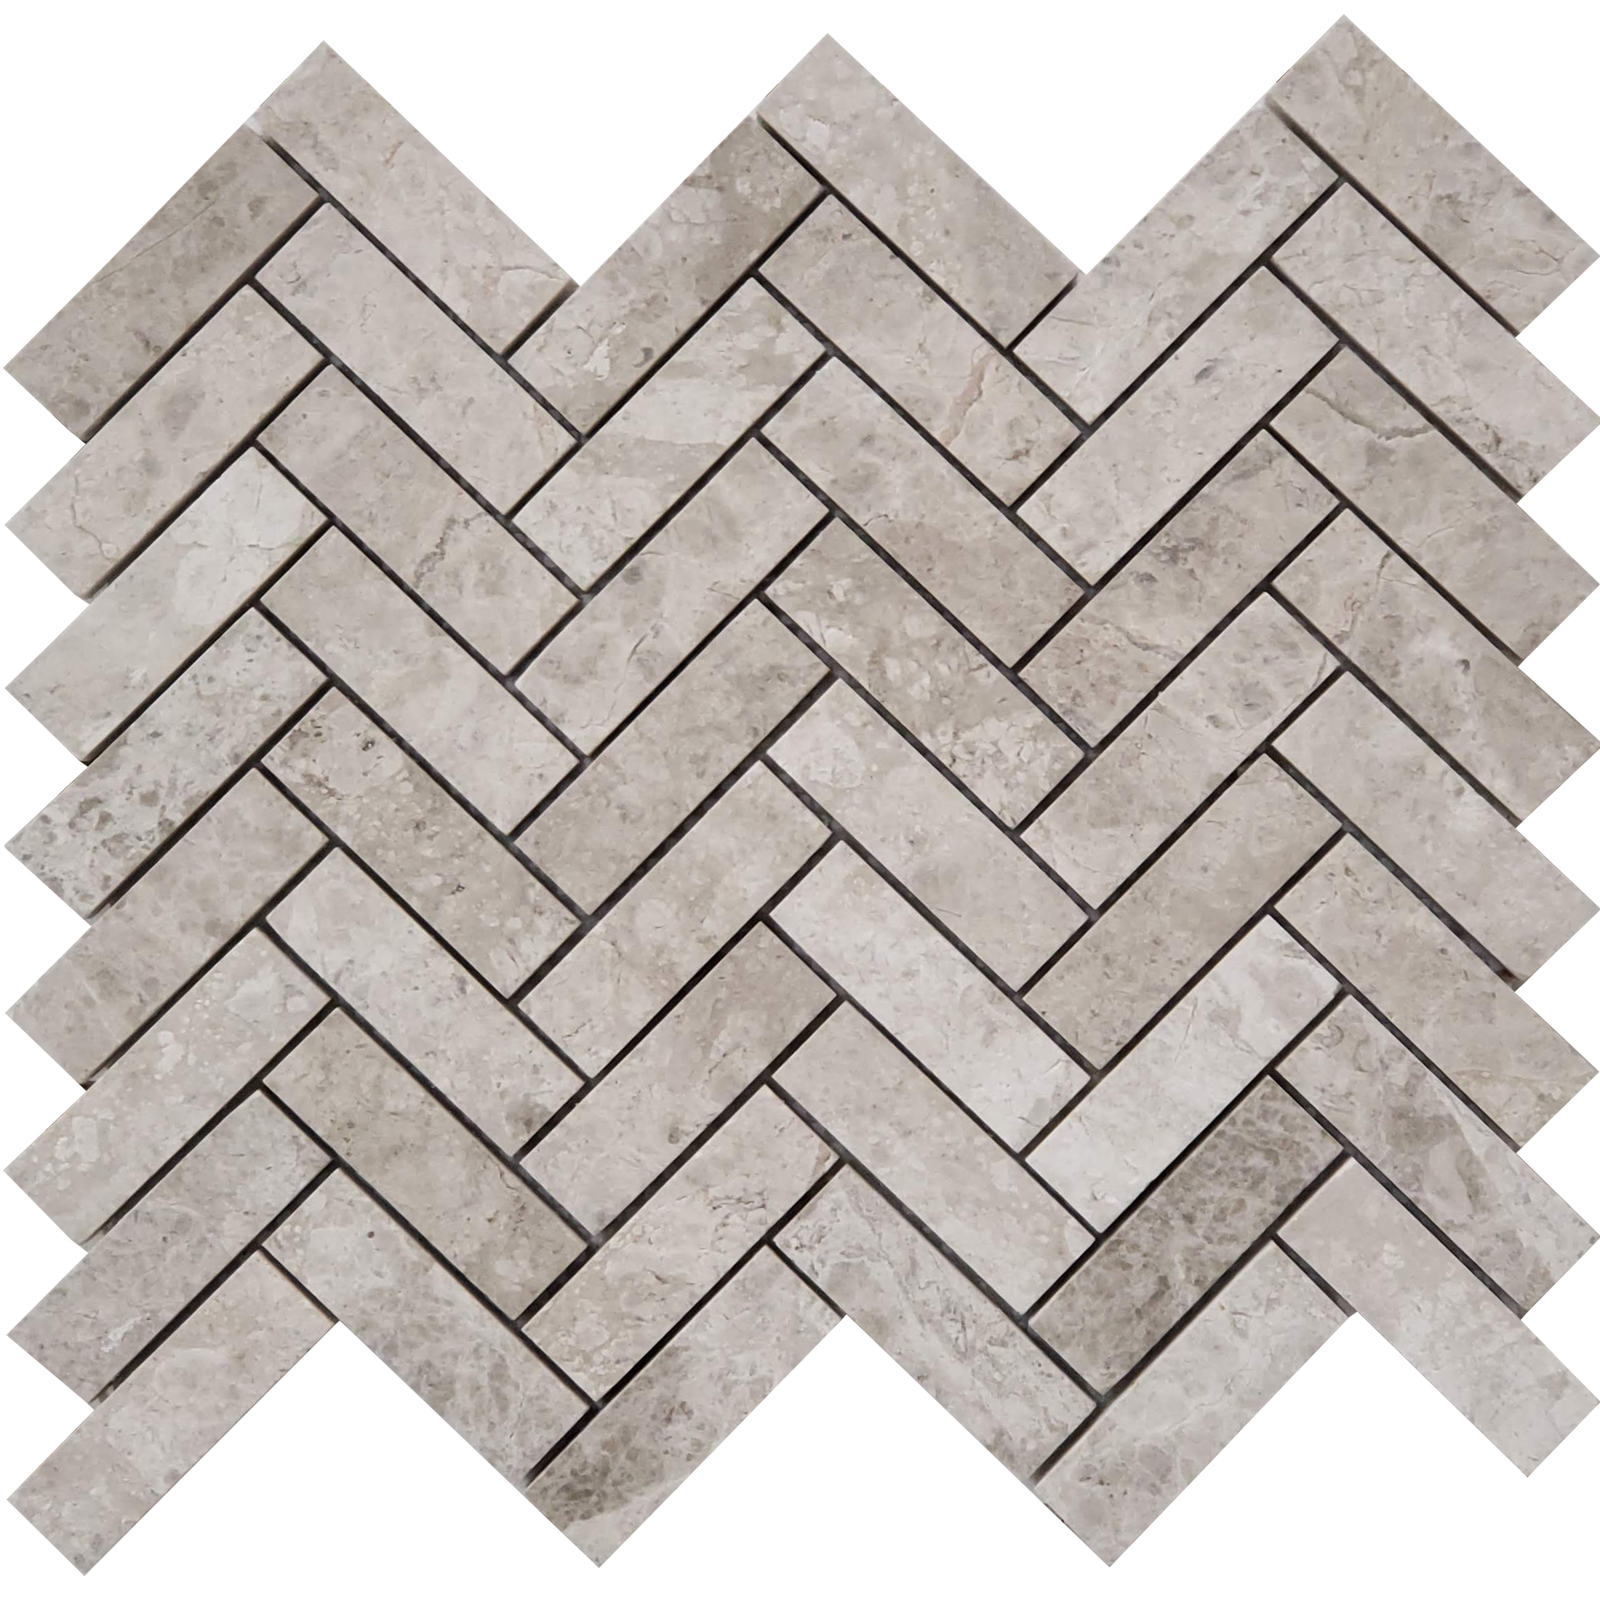 1x3 Herringbone Mosaic Silver Shadow Marble Polished